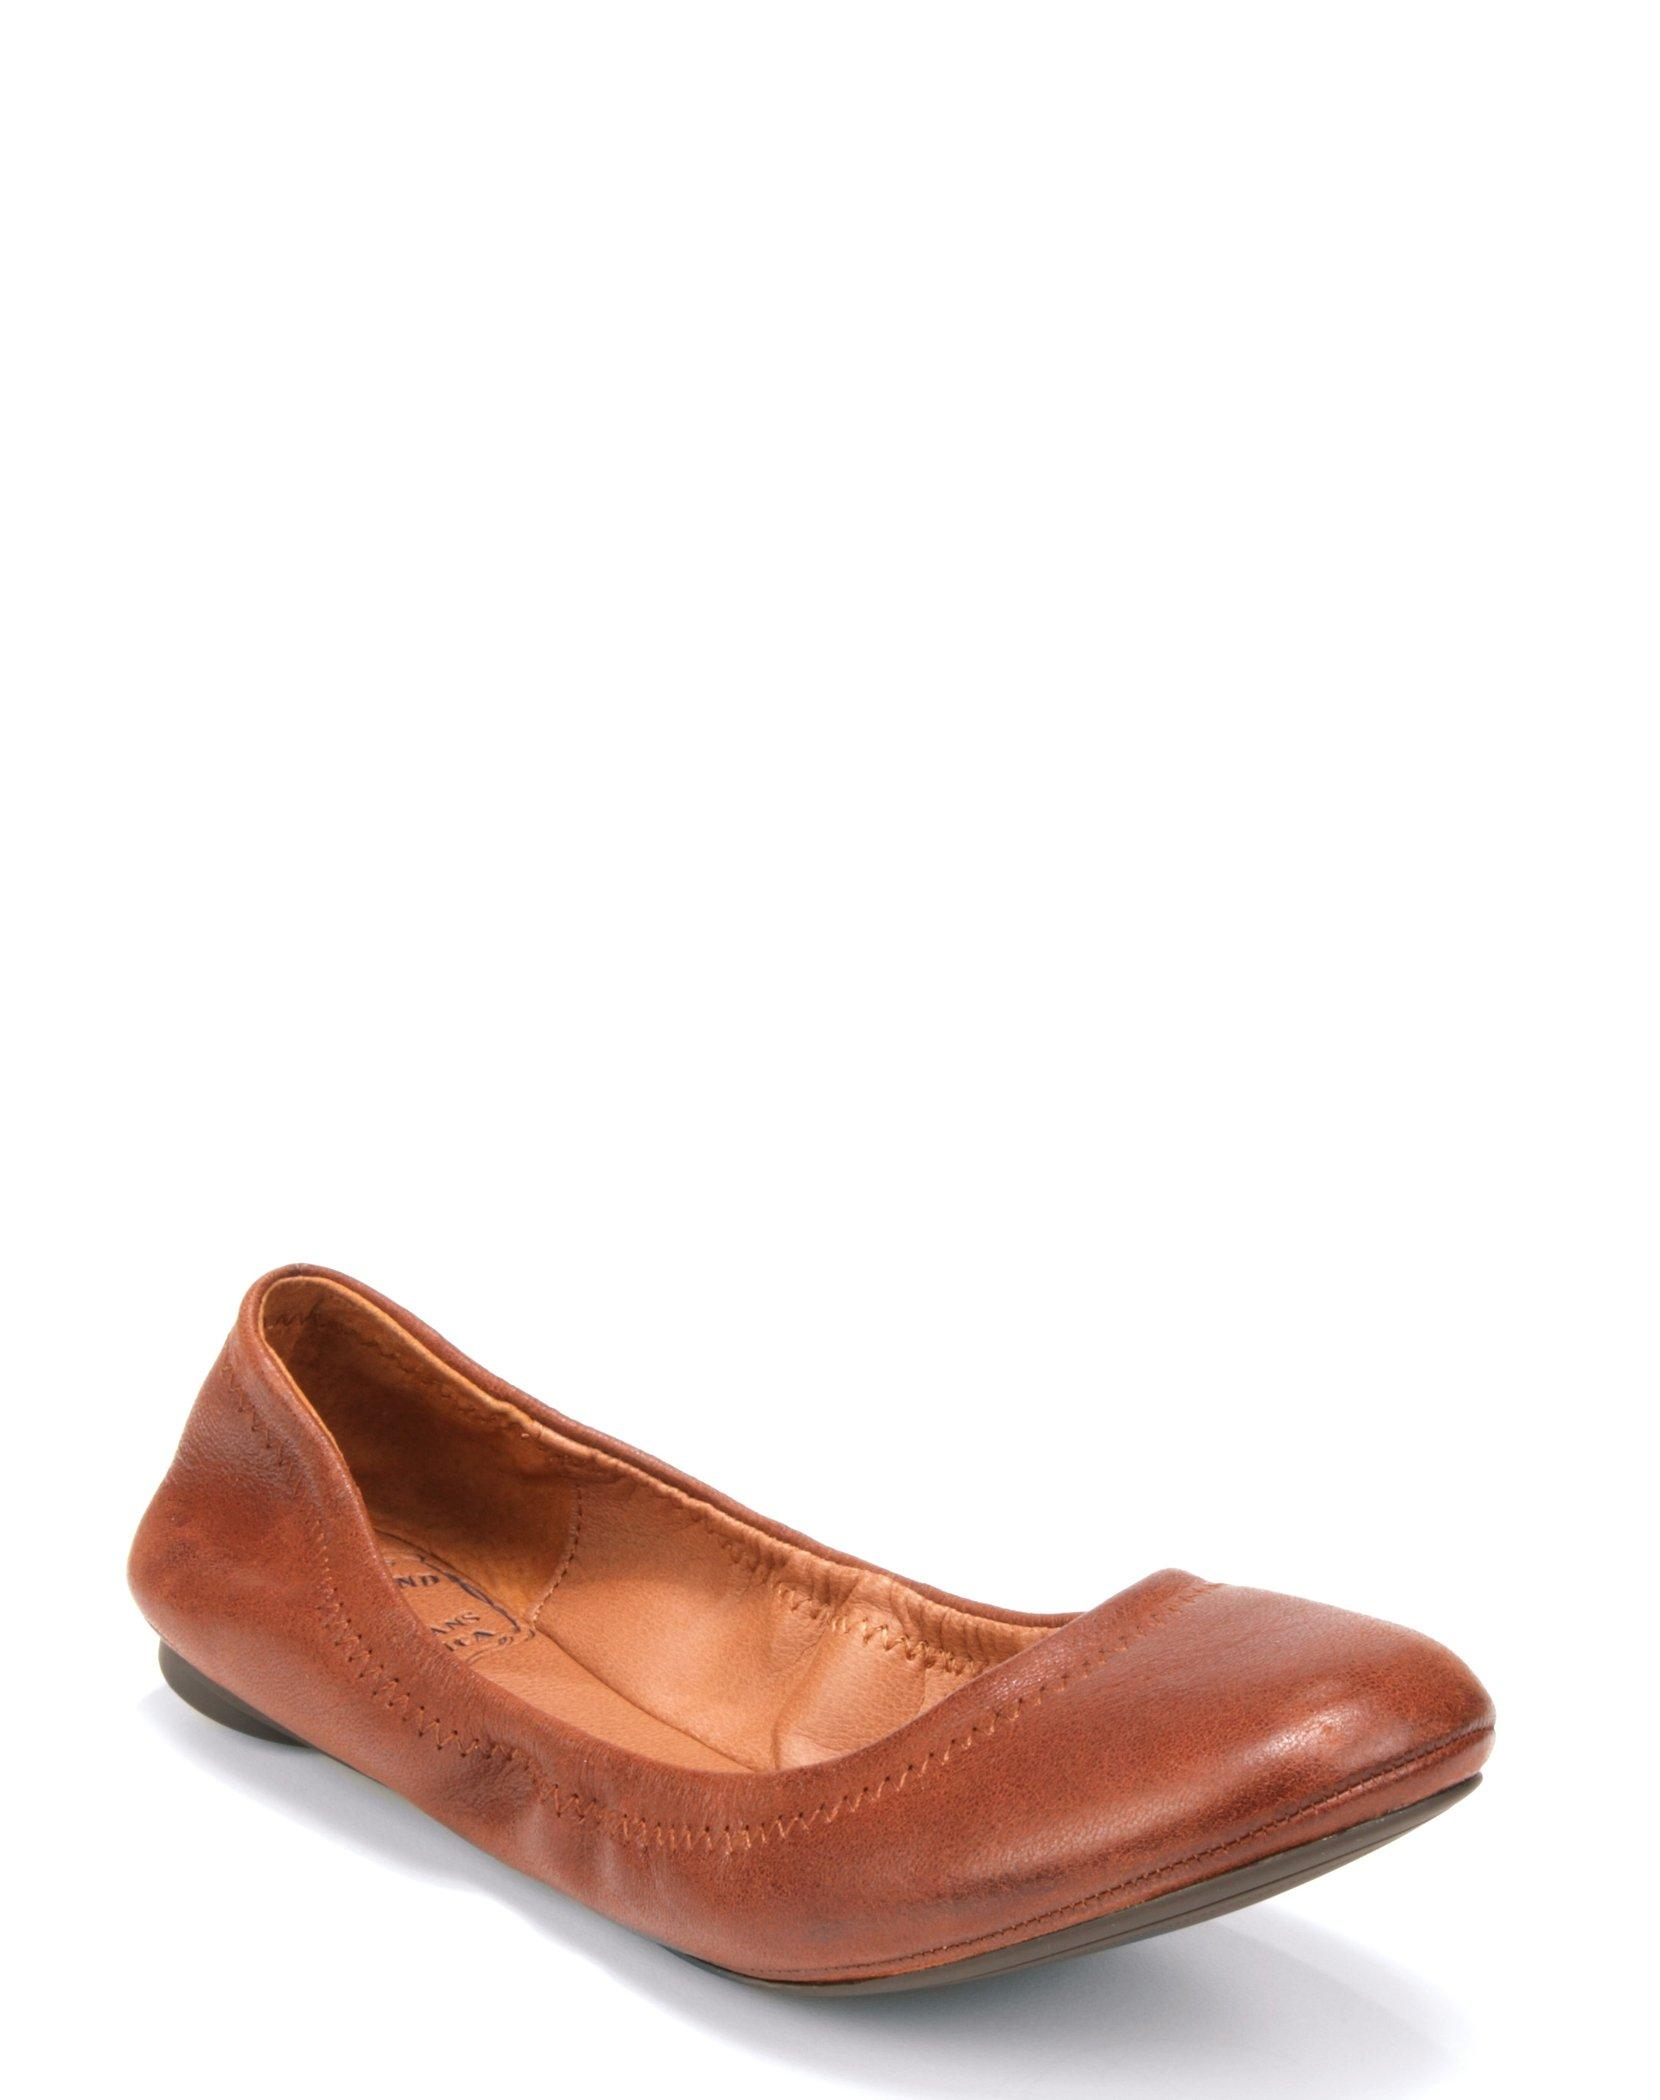 EMMIE LEATHER FLATS, image 1